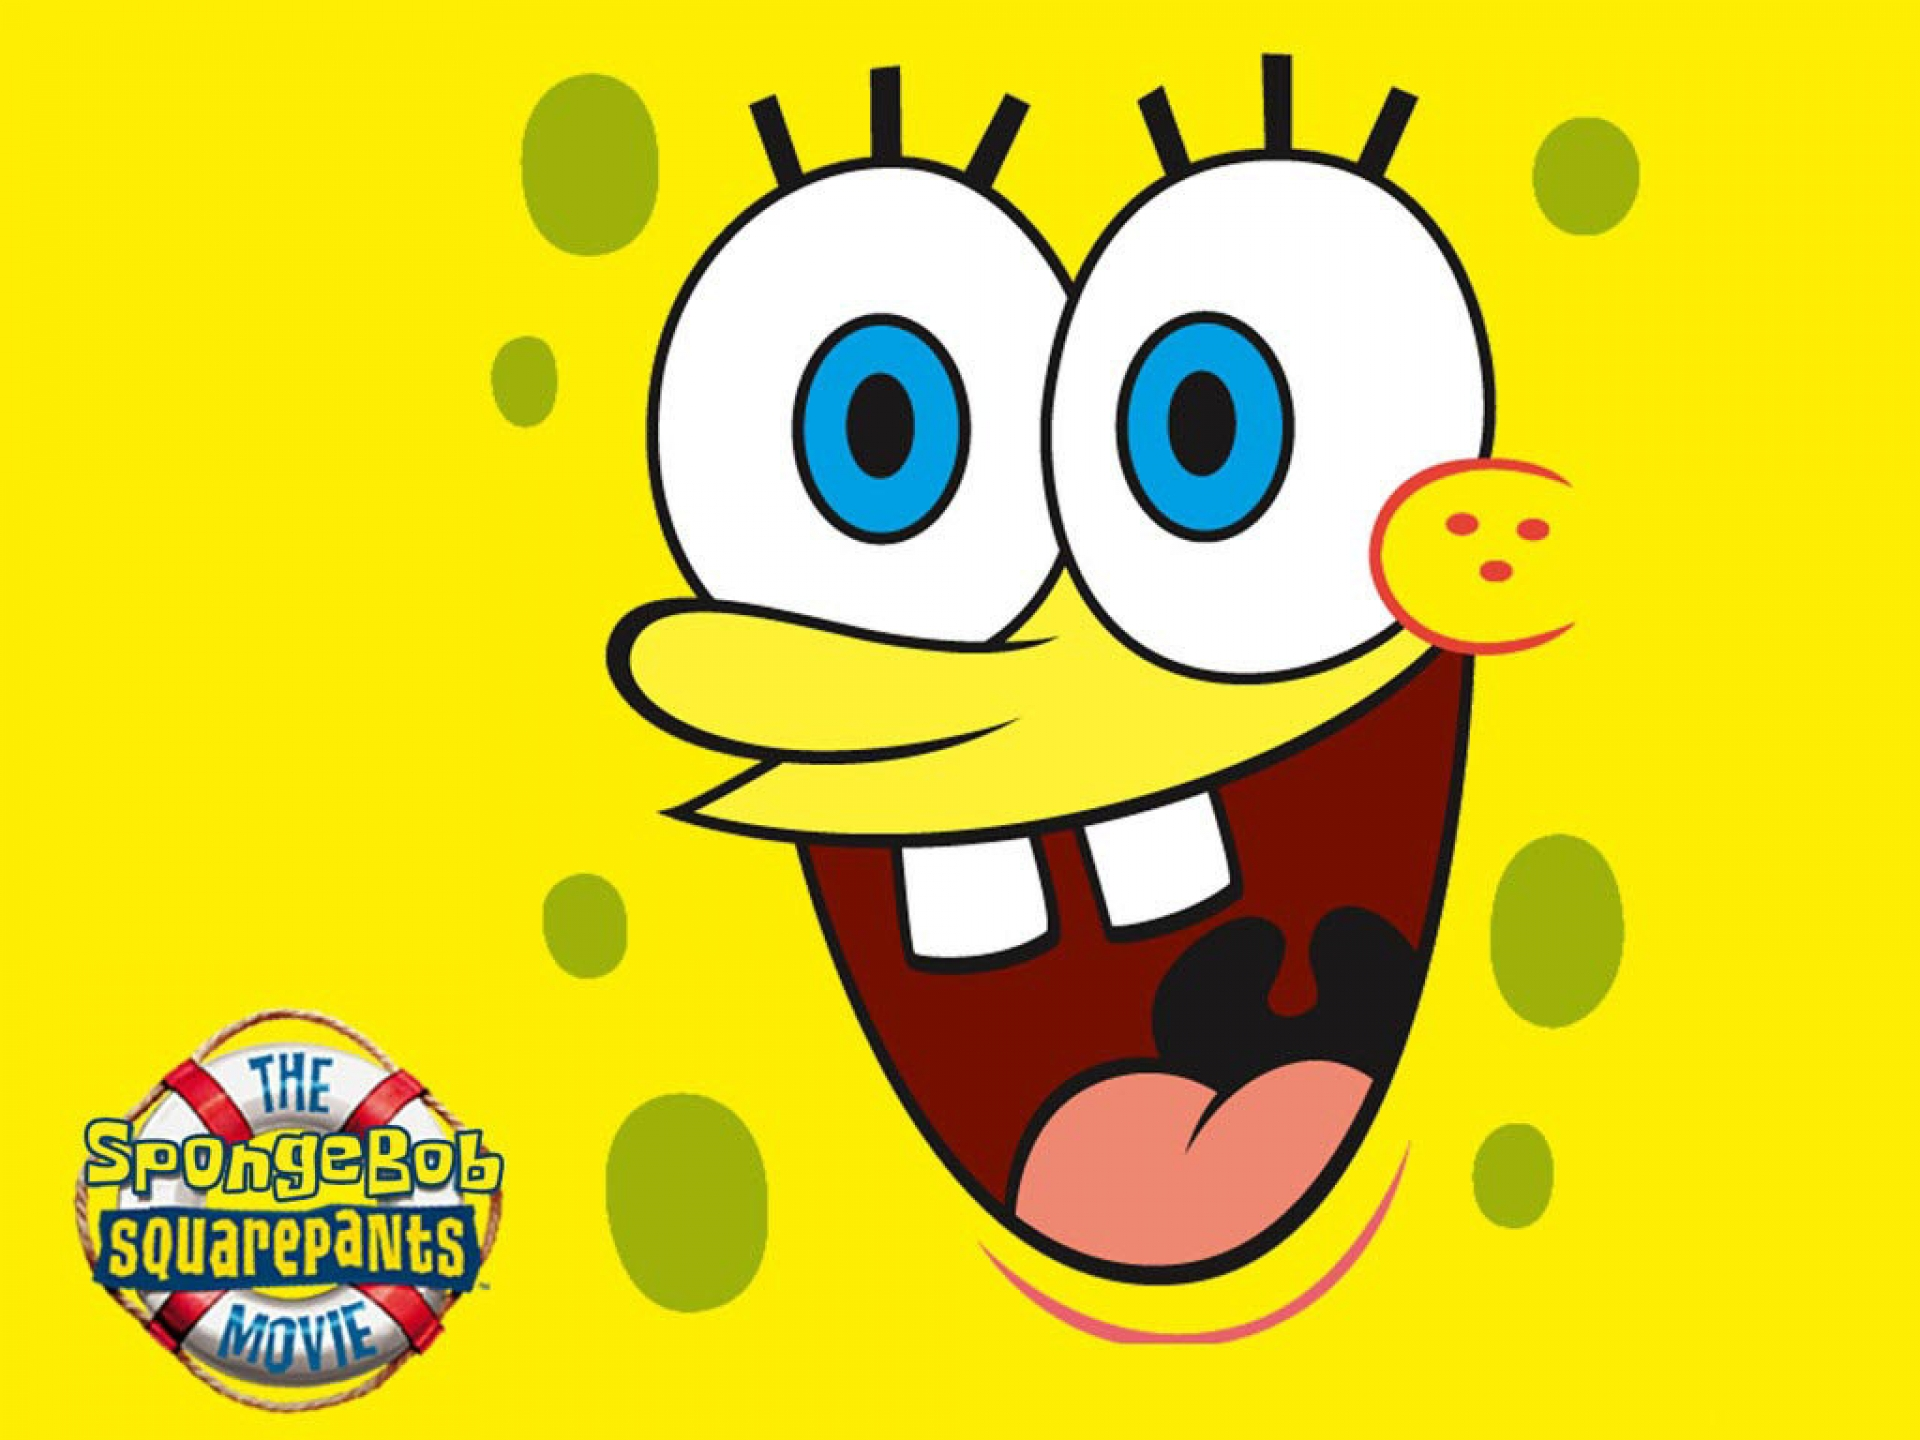 1920x1440 Funny Cartoon Faces 19 Background Wallpaper